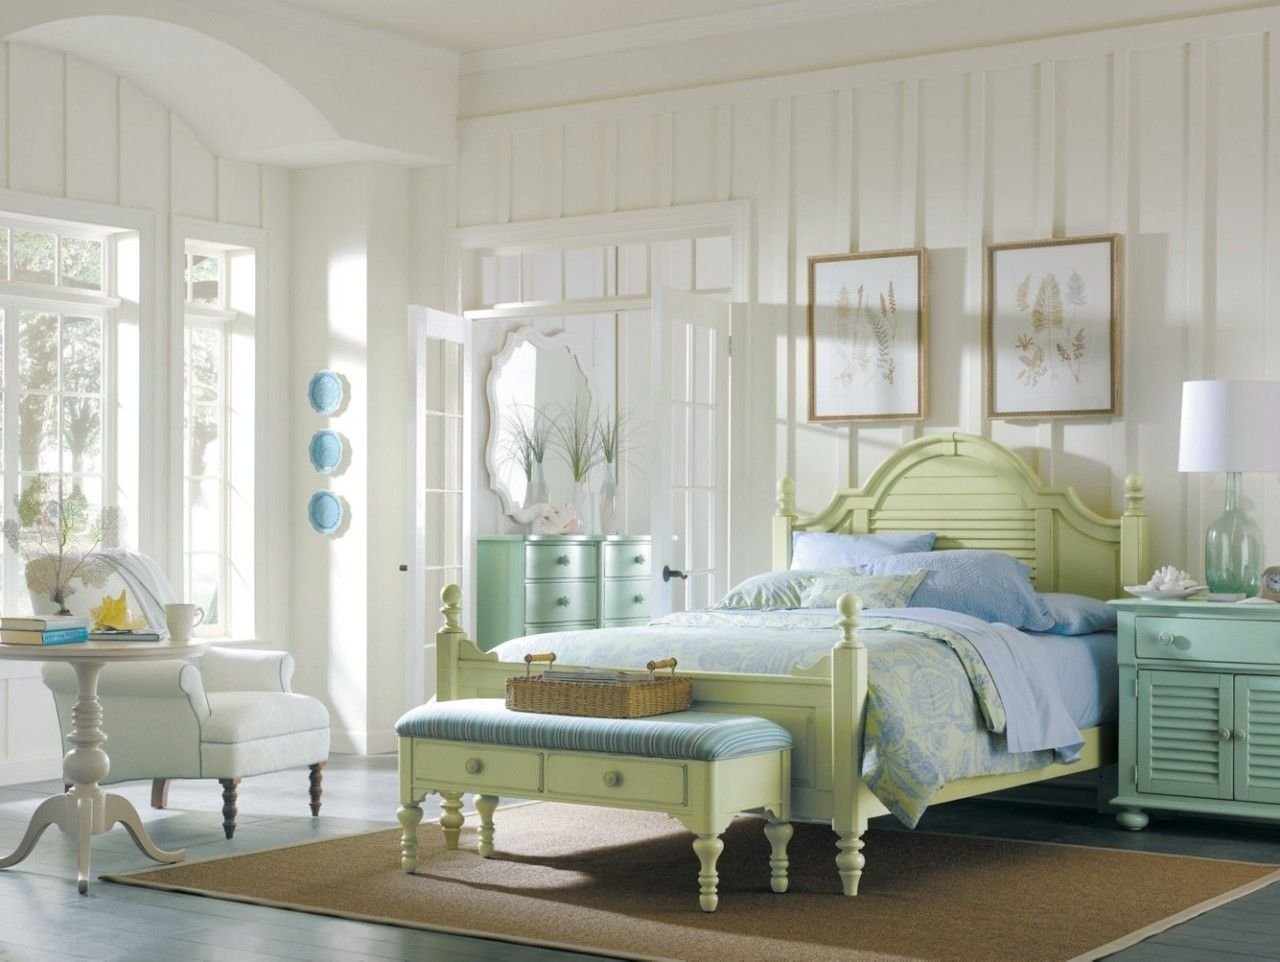 consider retreat furniture lexington seaside using cottage bedroom to with set green bed soft getting pin traditional frame blue walls white comforter and mesmerizing